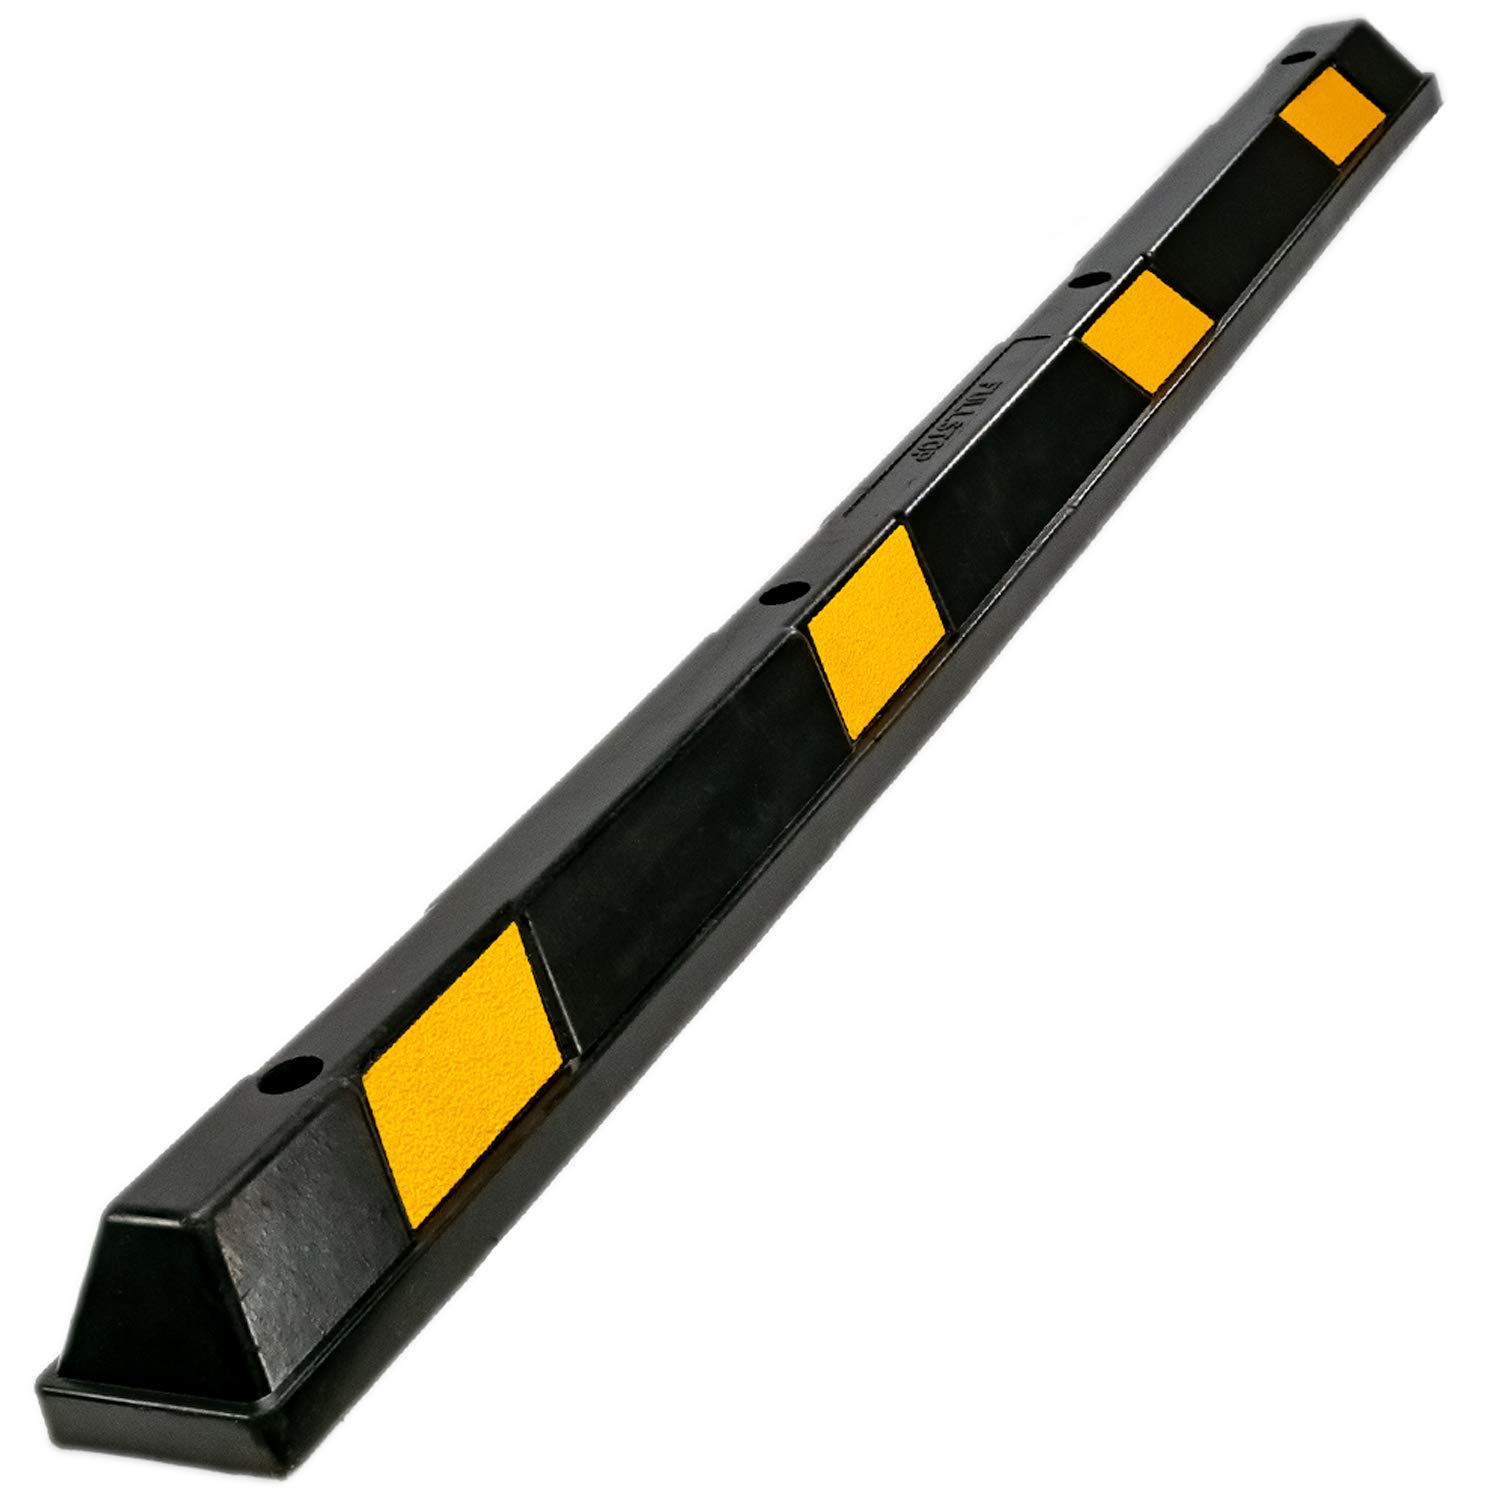 Fullstop Vehicle Parking Block, Black Commercial Heavy Duty Rubber Curb with 8 ScatterGlass Reflective Yellow Targets for Car, Truck, RV and Trailer Stop Aid, 72 Inches Long x 4 Inches High